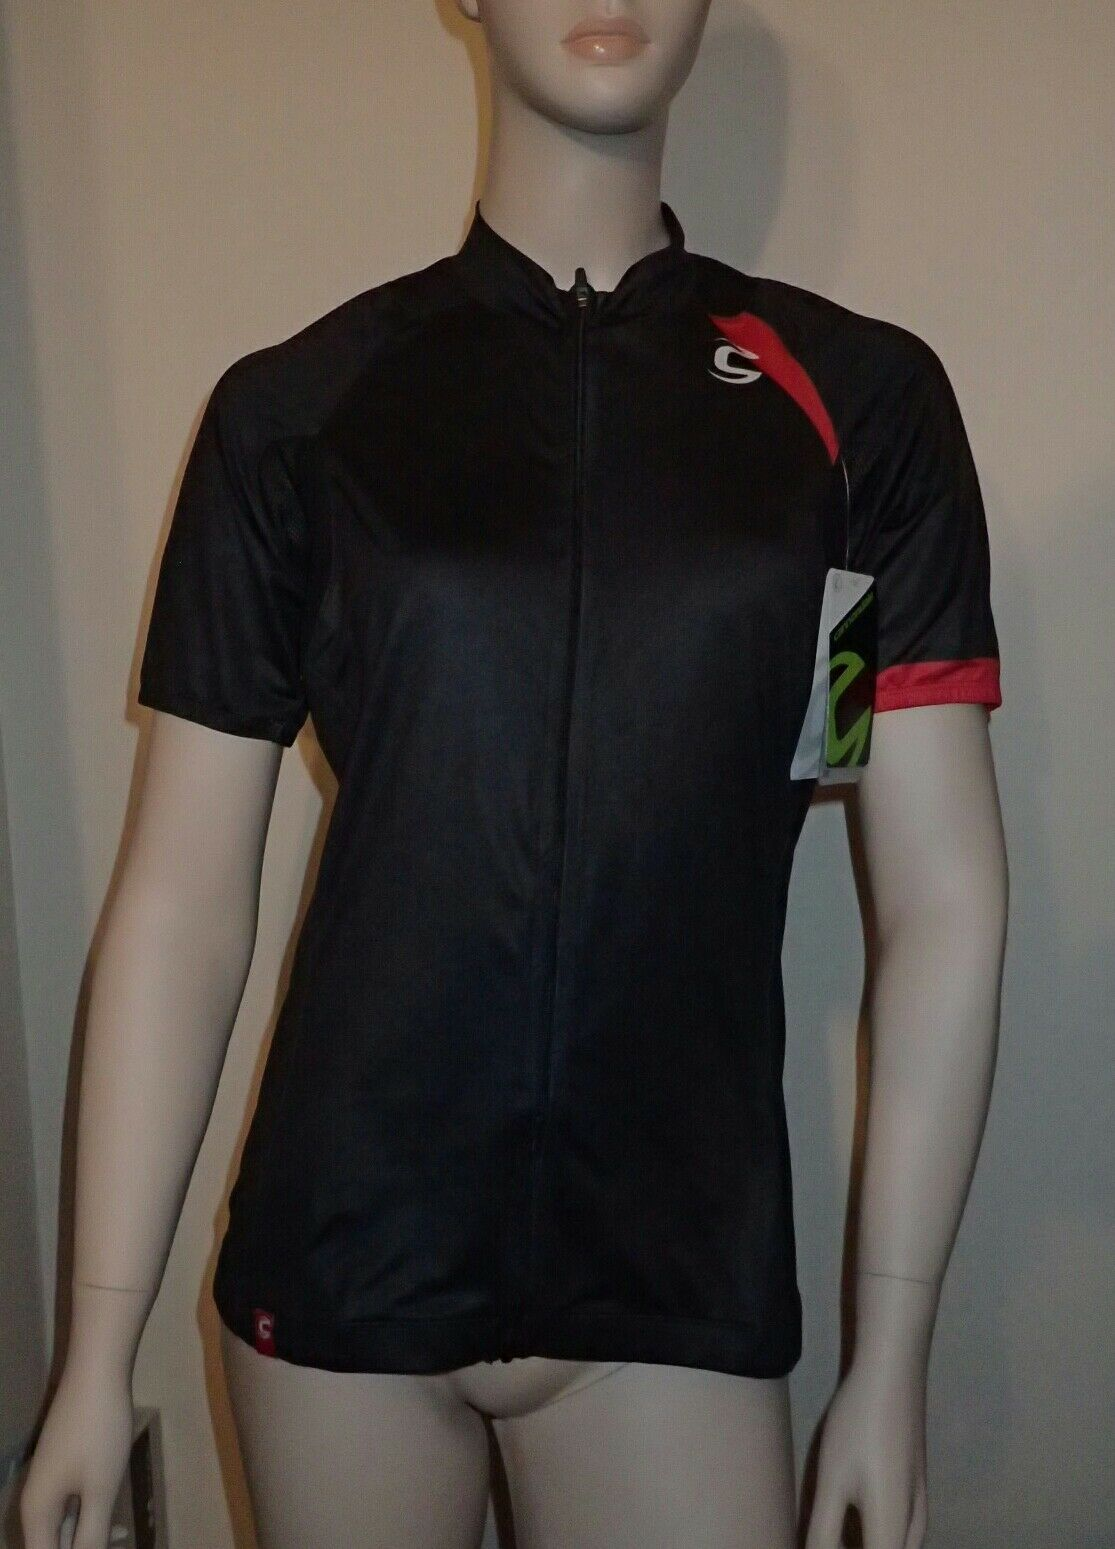 Cannondale Women's  Cycling Zipup Top L - NWT  famous brand